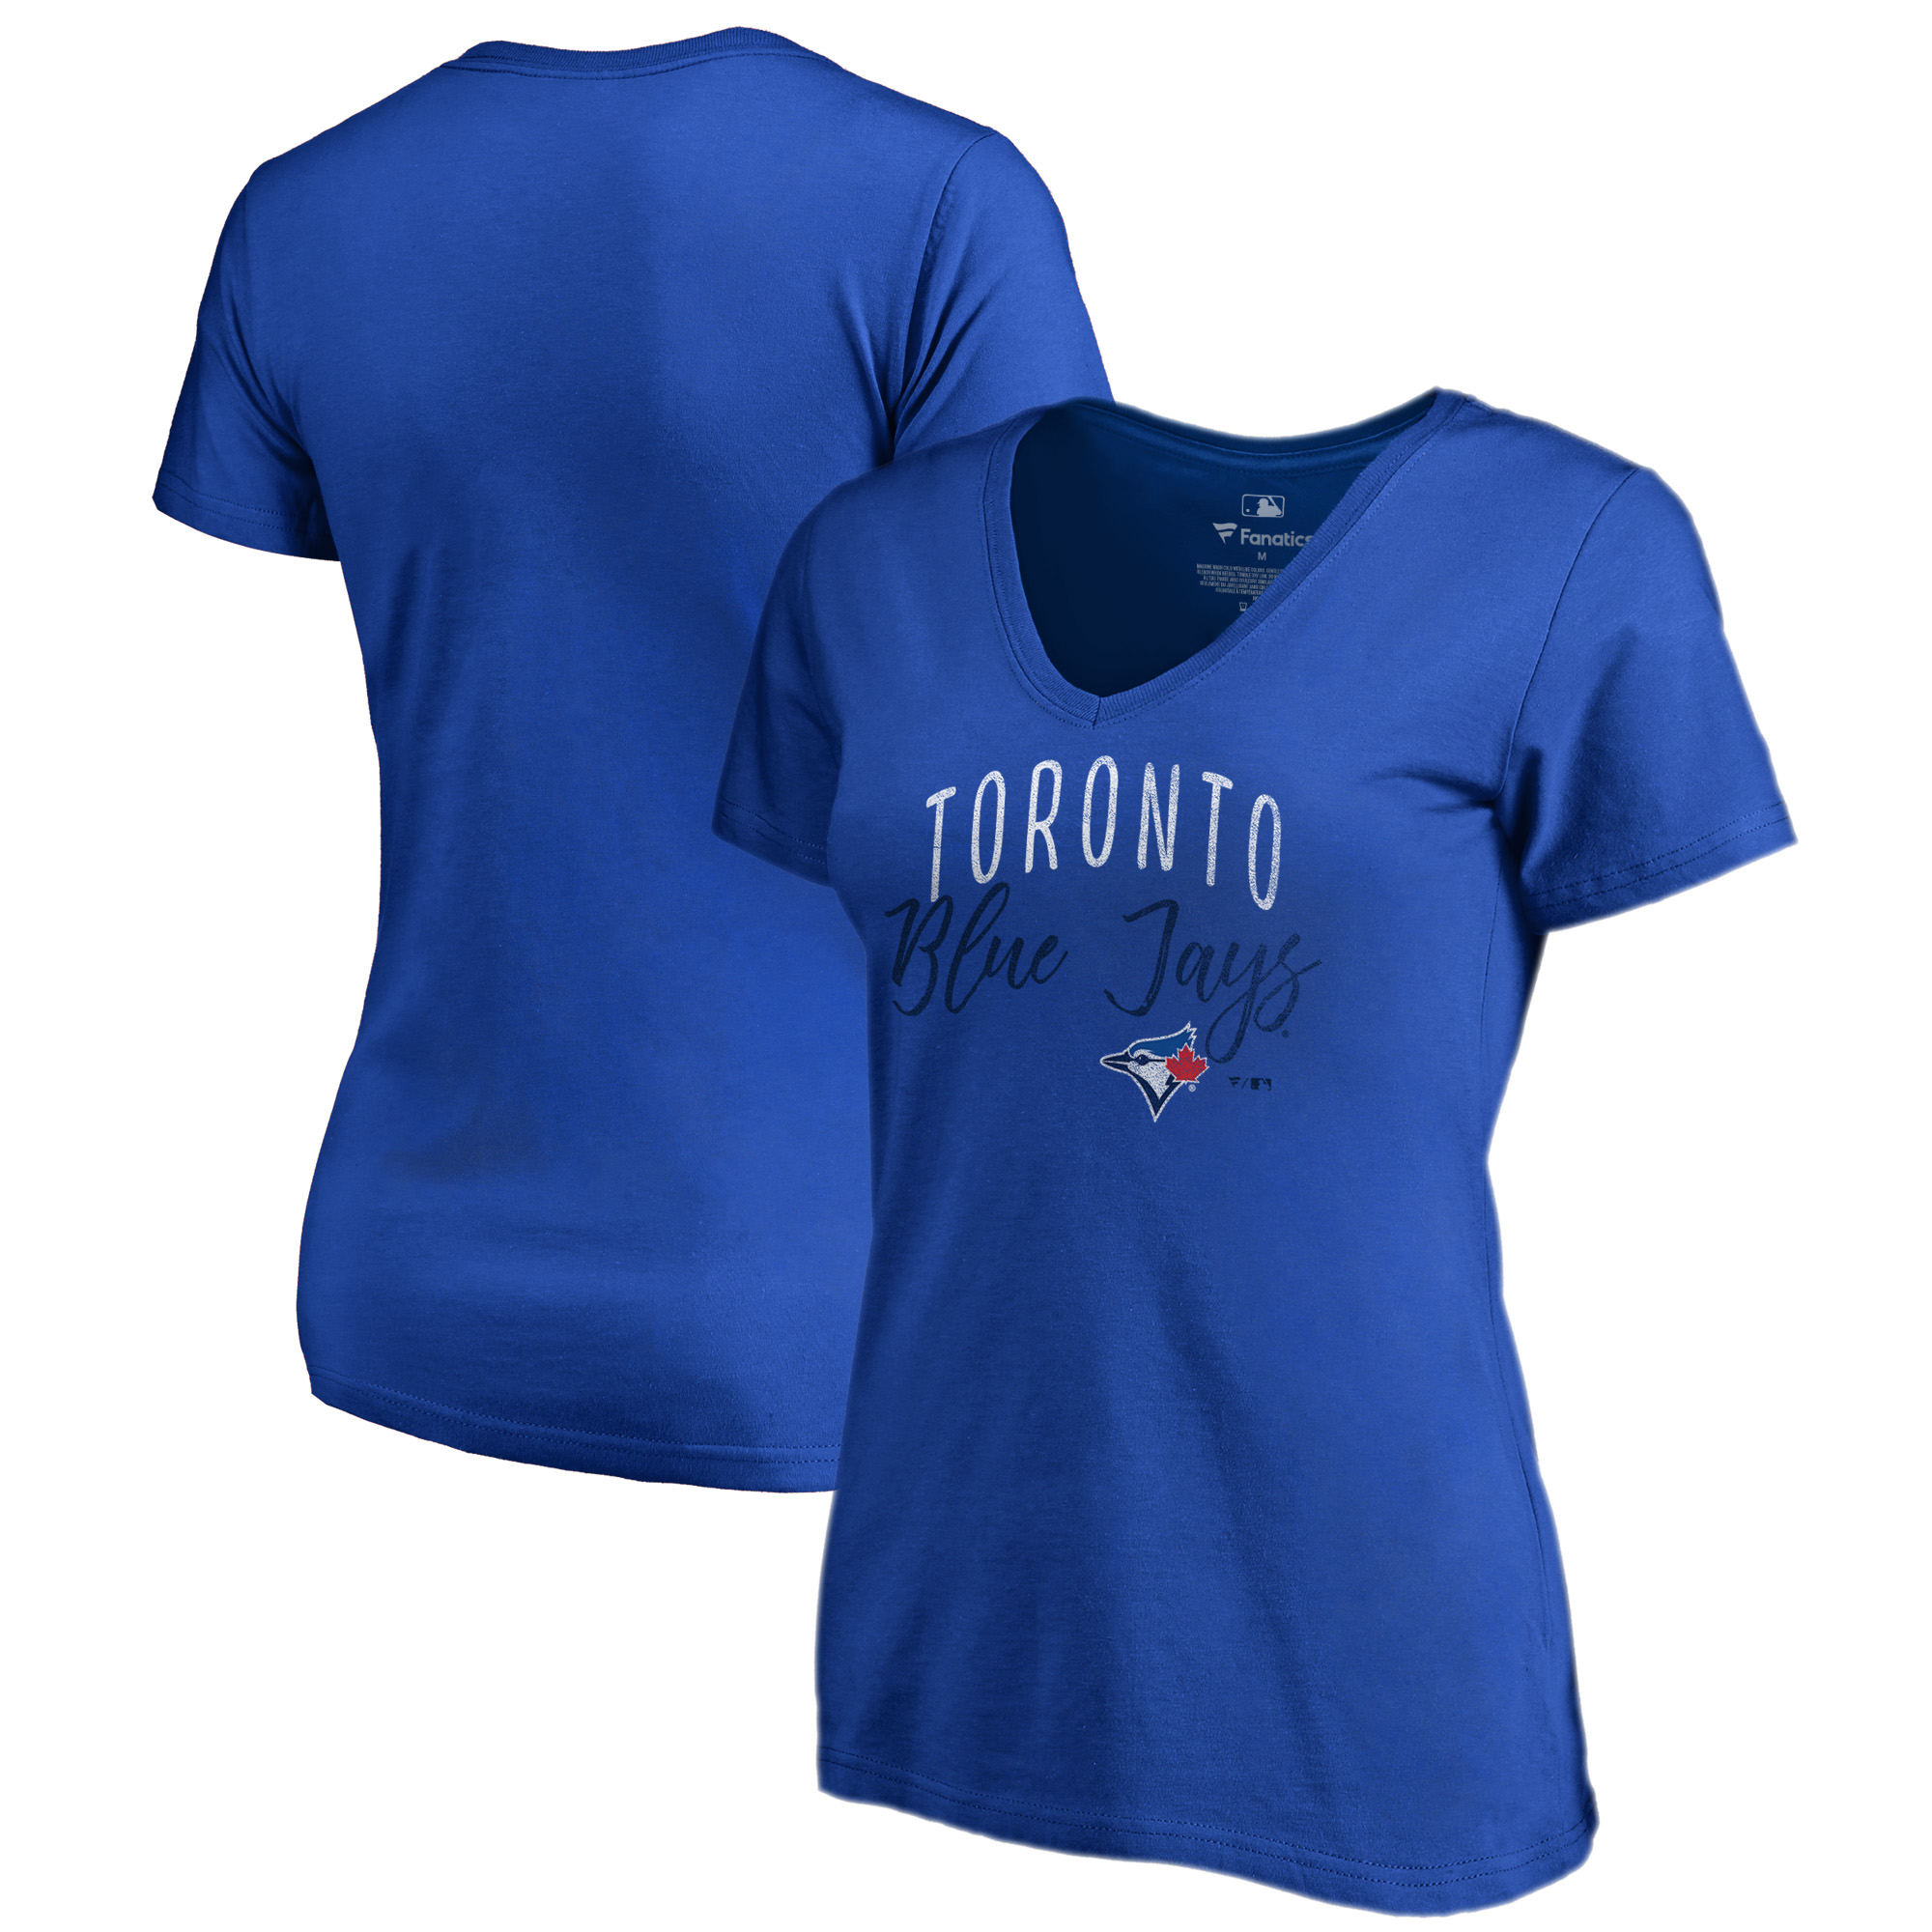 Toronto Blue Jays Fanatics Branded Women's Graceful V-Neck T-Shirt - Royal